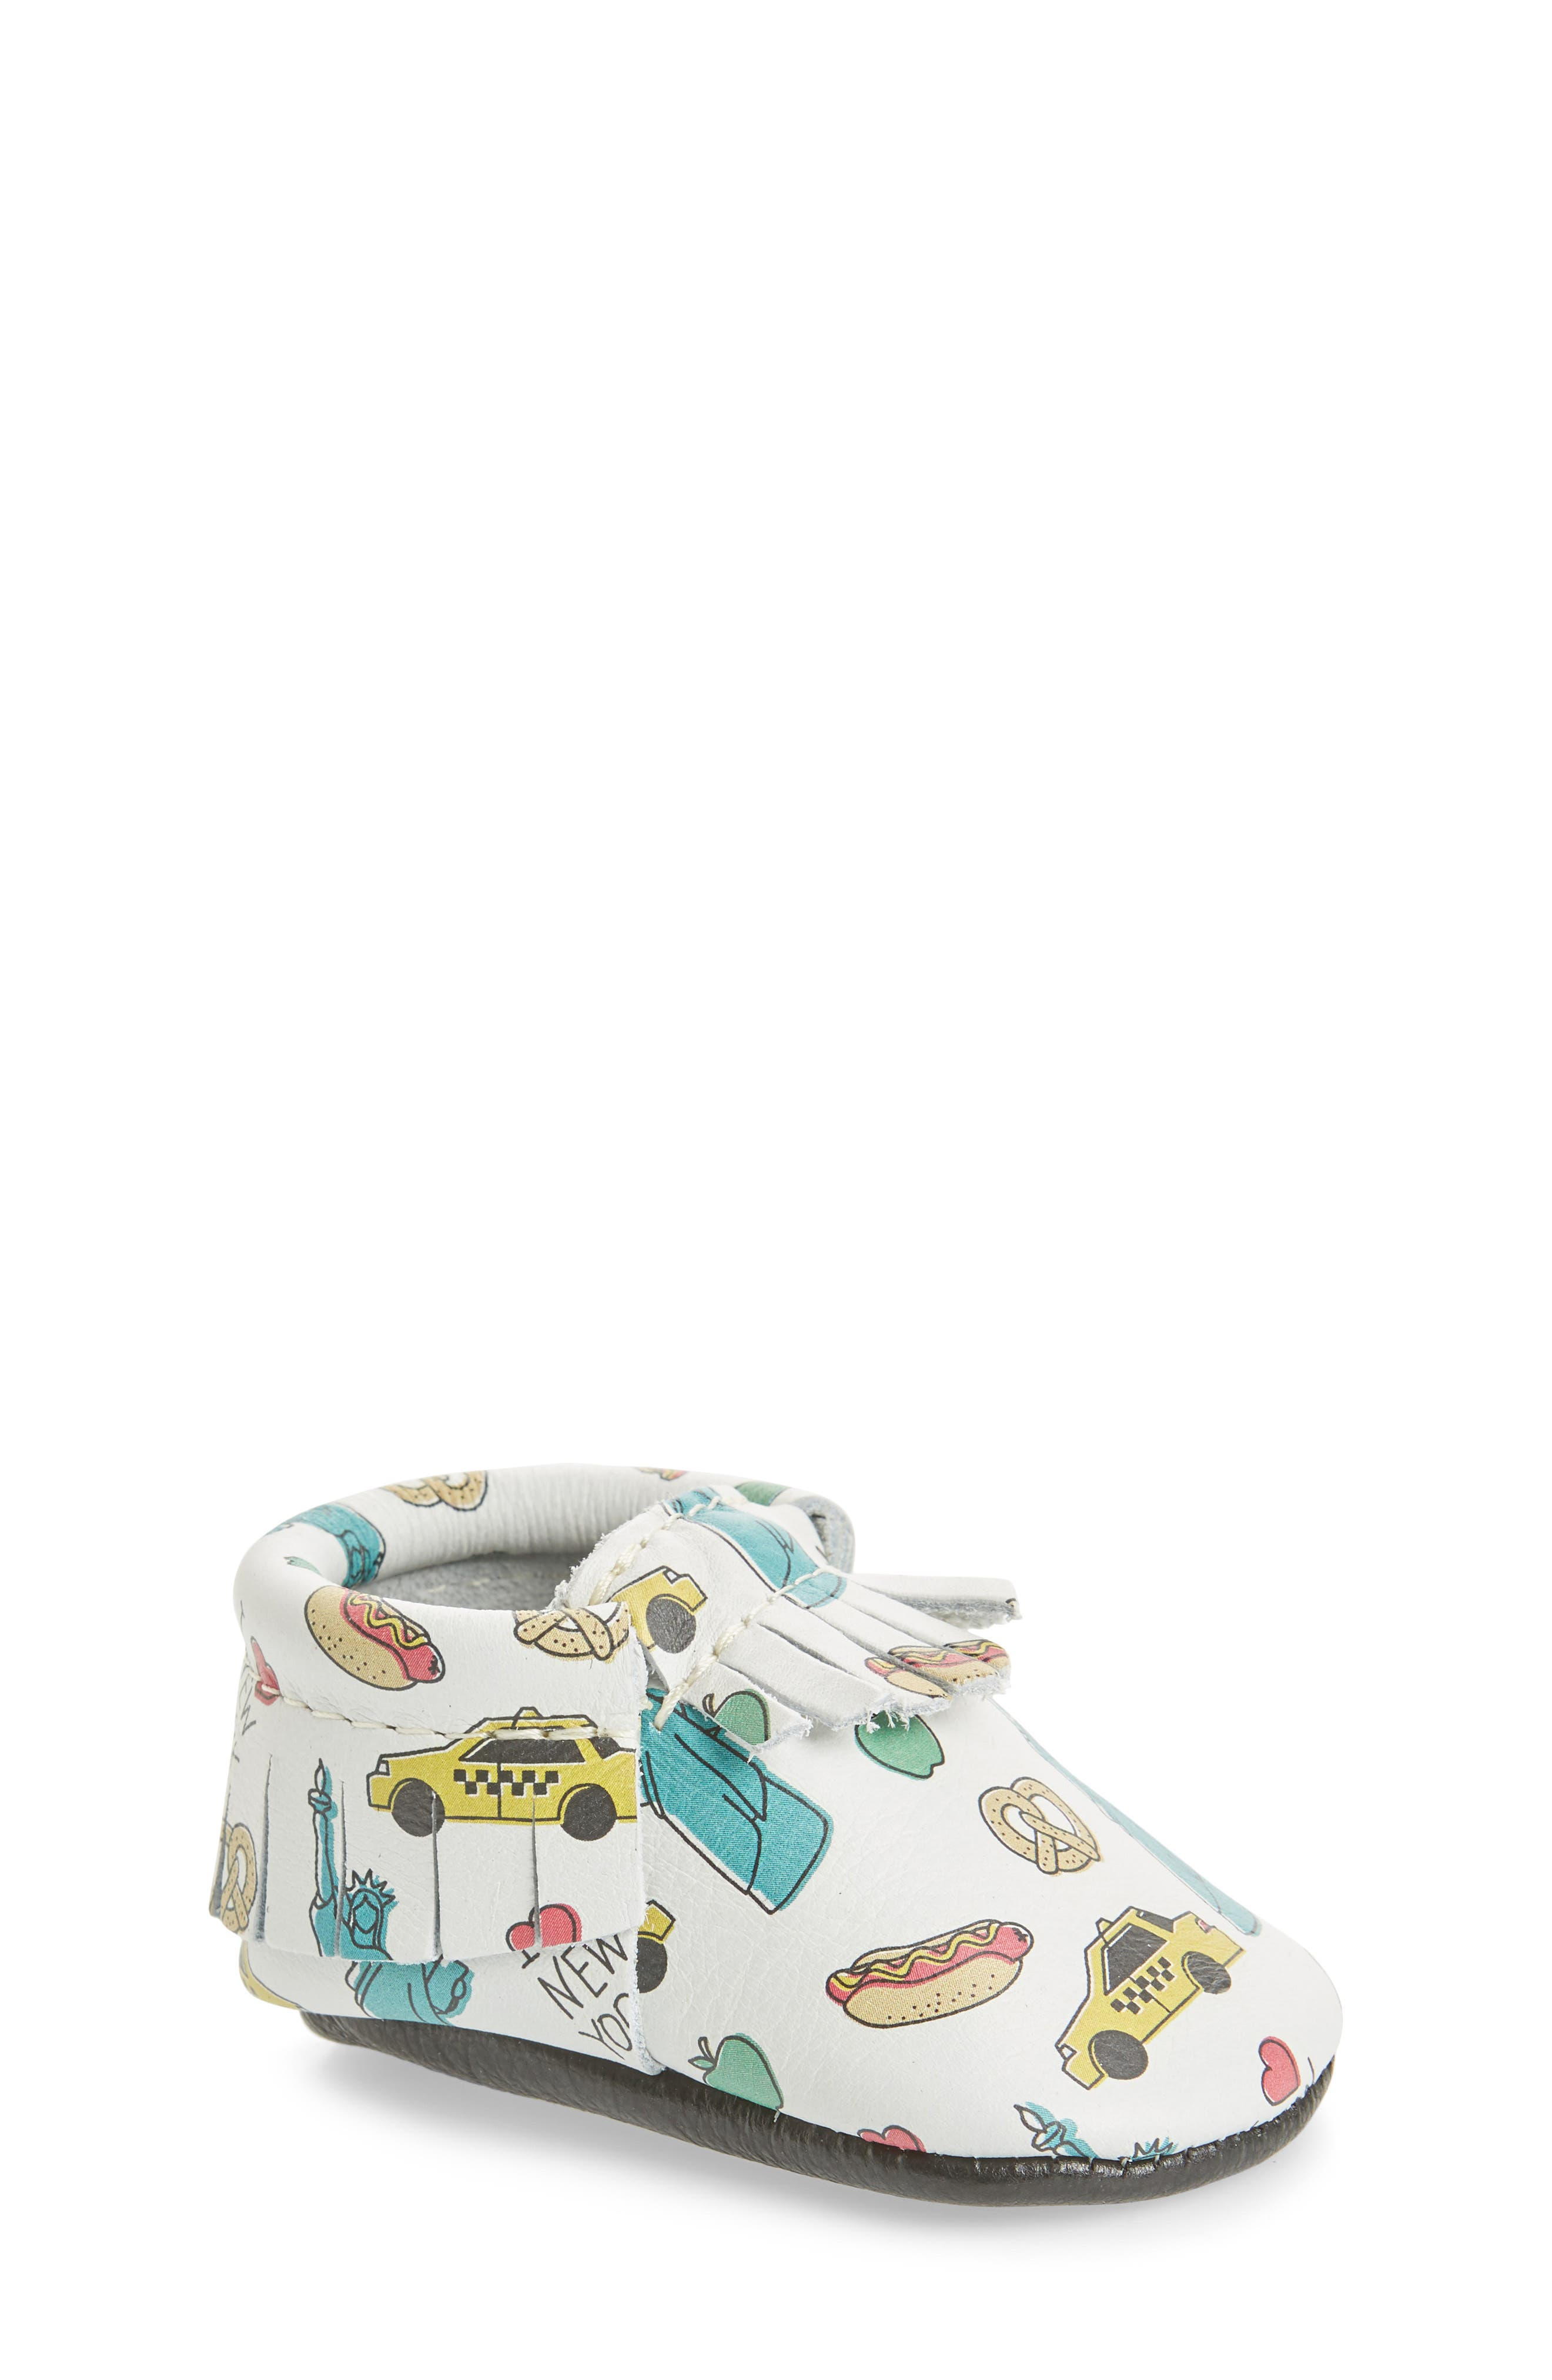 Big Apple Moccasin Bootie,                             Main thumbnail 1, color,                             PRINT LEATHER